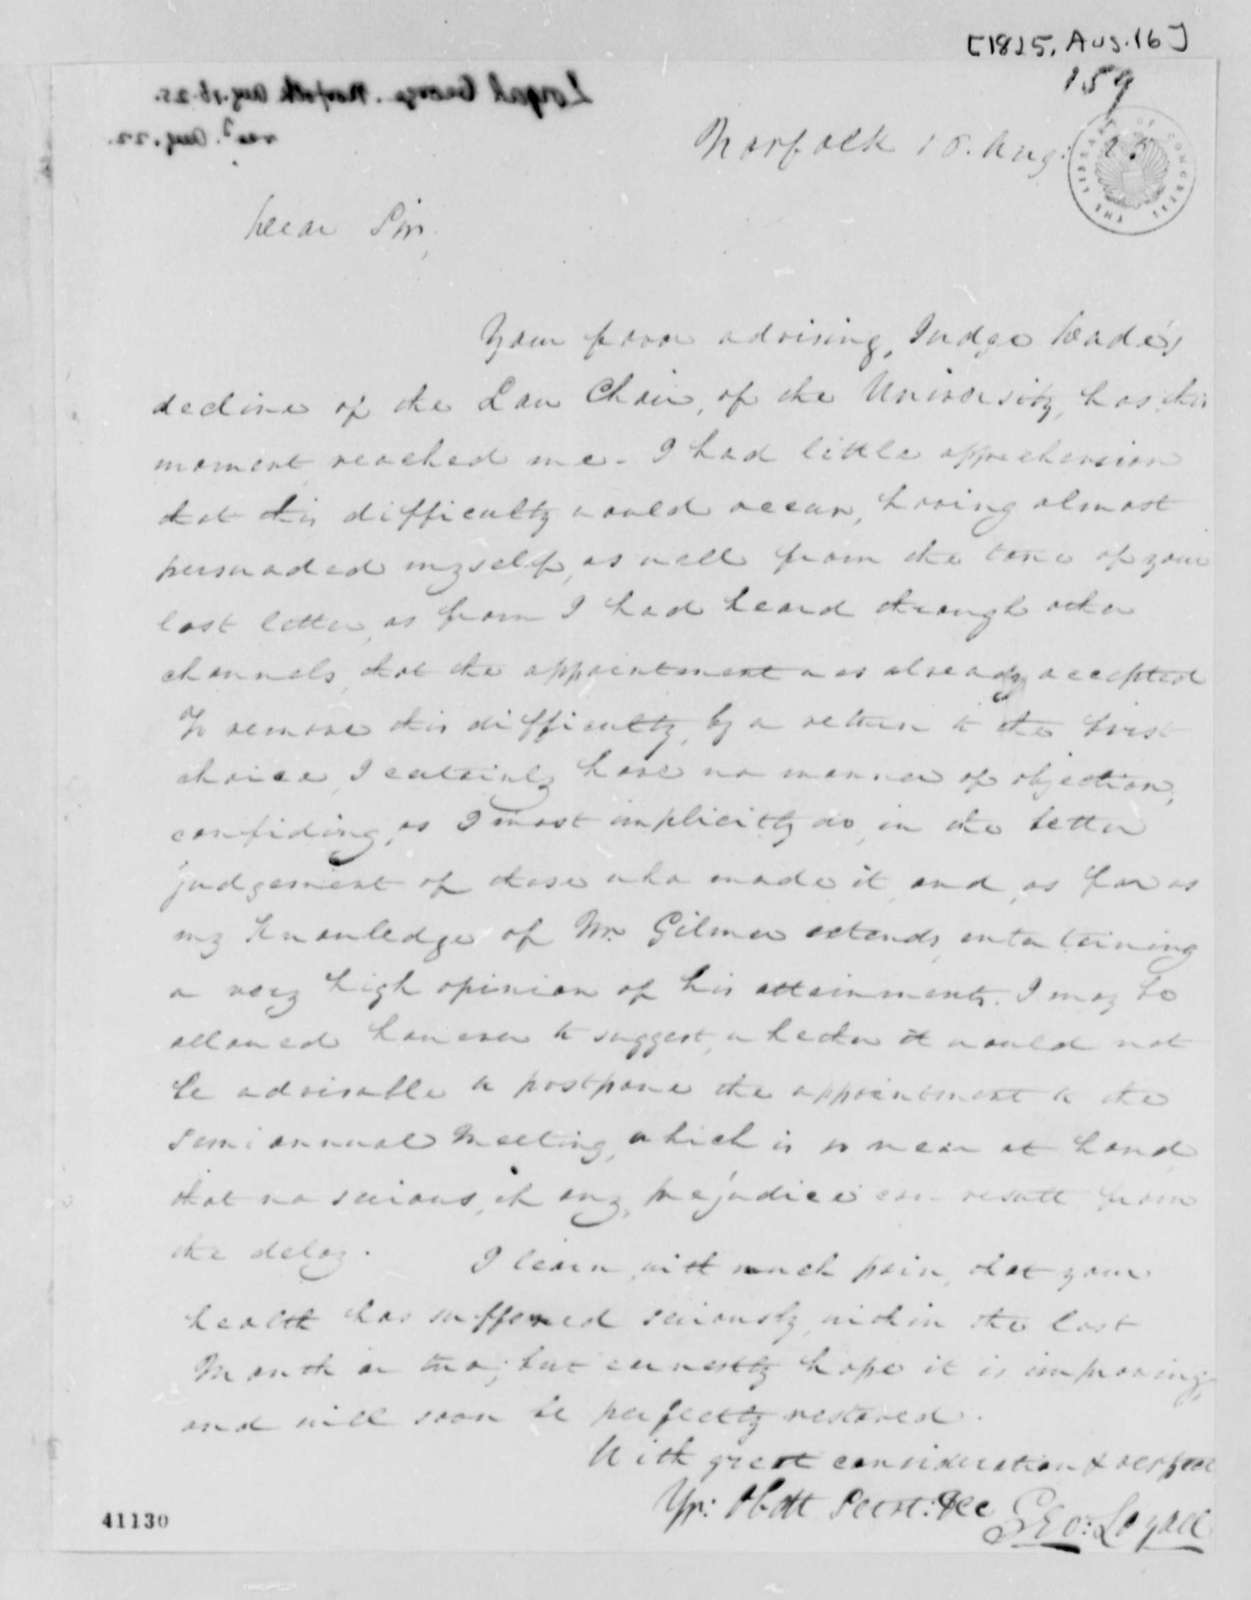 George Loyall to Thomas Jefferson, August 16, 1825